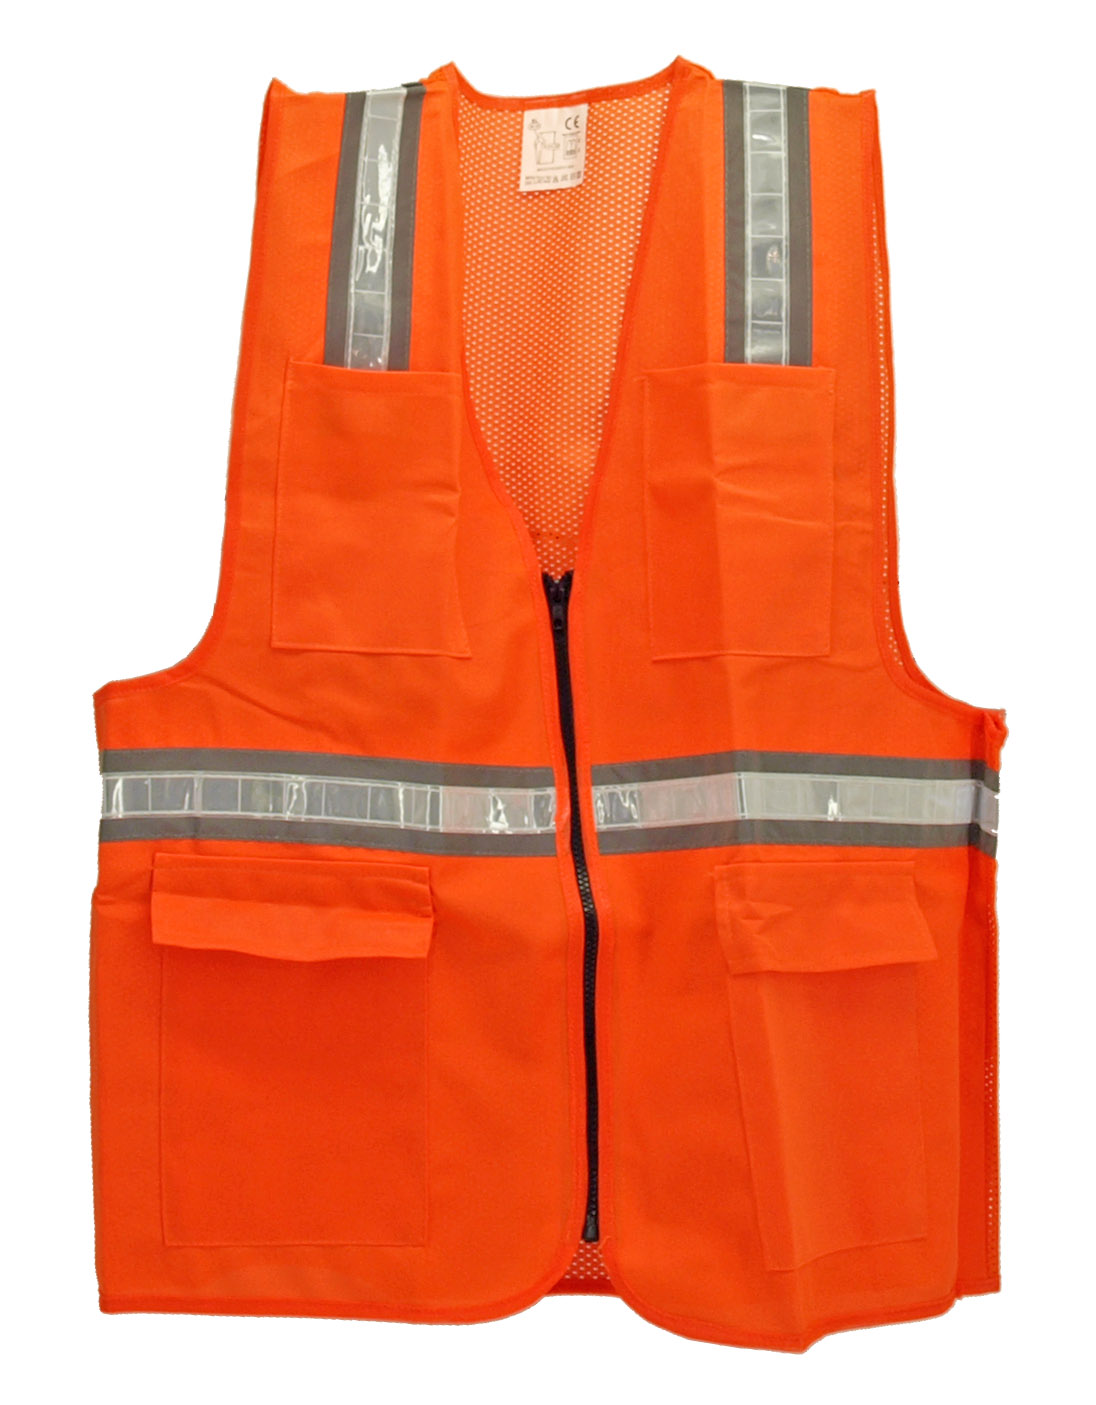 XL Orange Color Safety Vest